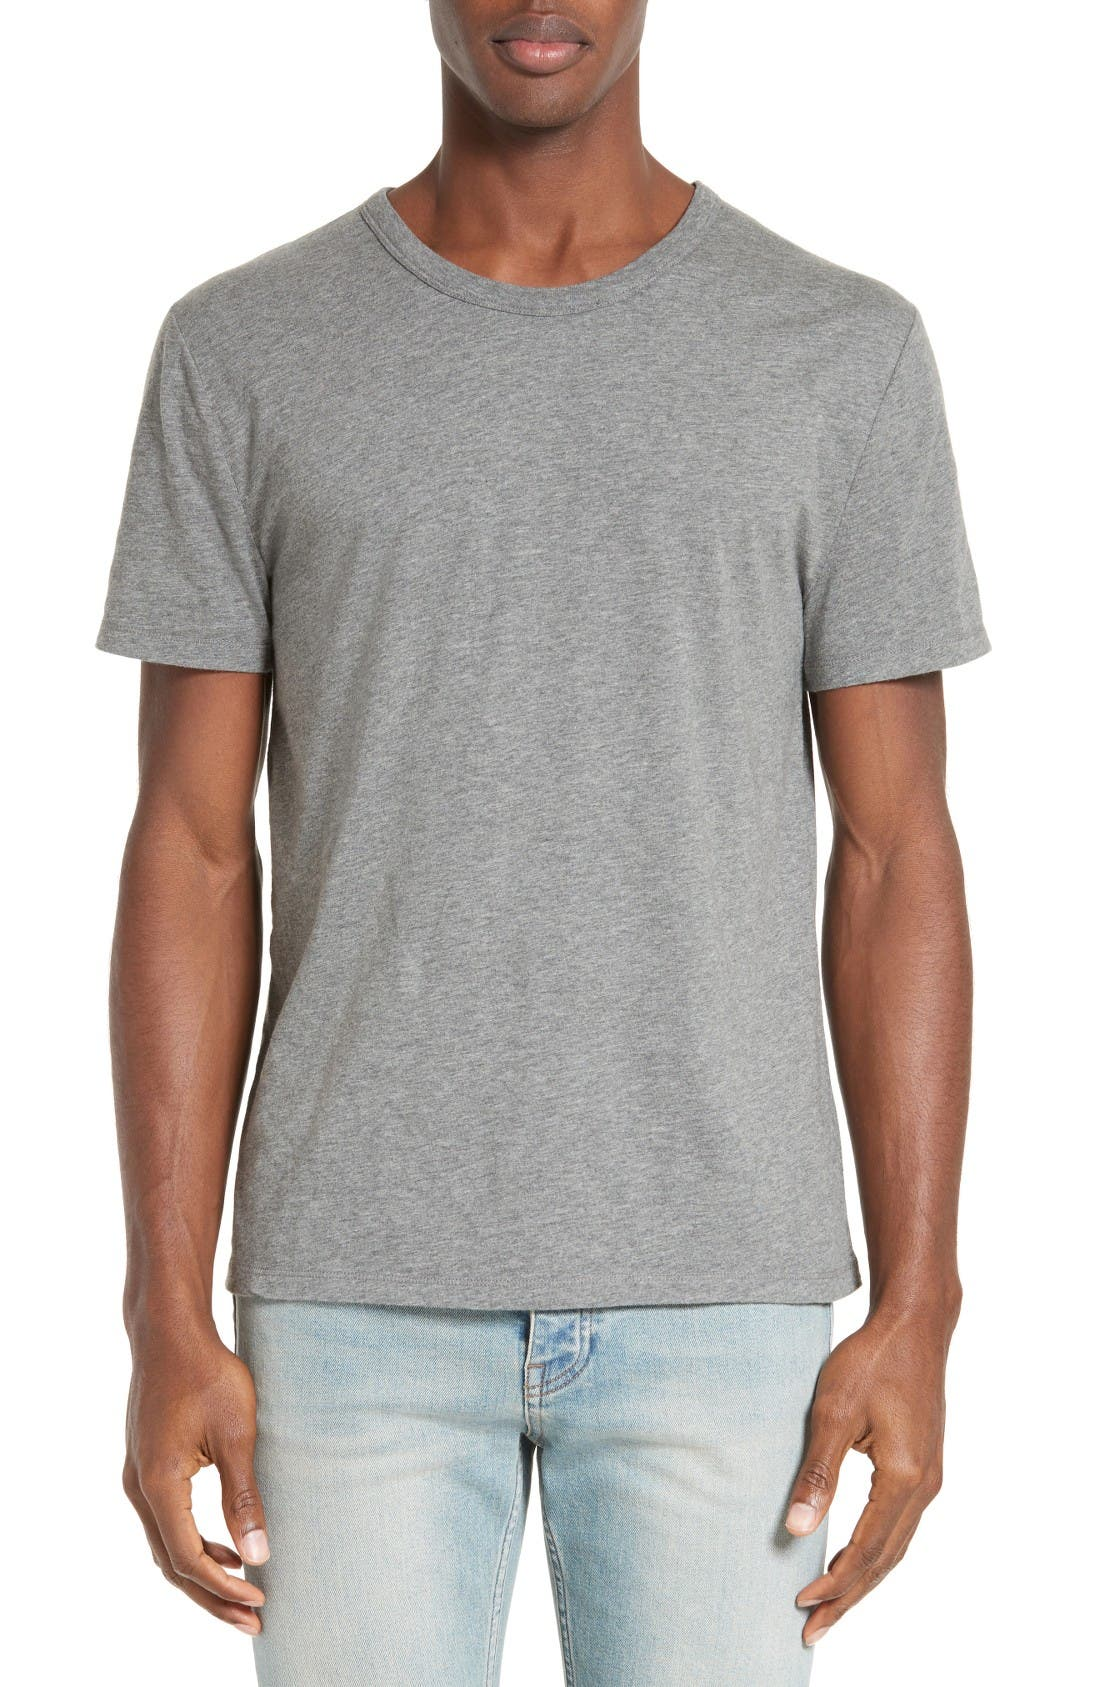 Alternate Image 1 Selected - T by Alexander Wang 'Classic' T-Shirt